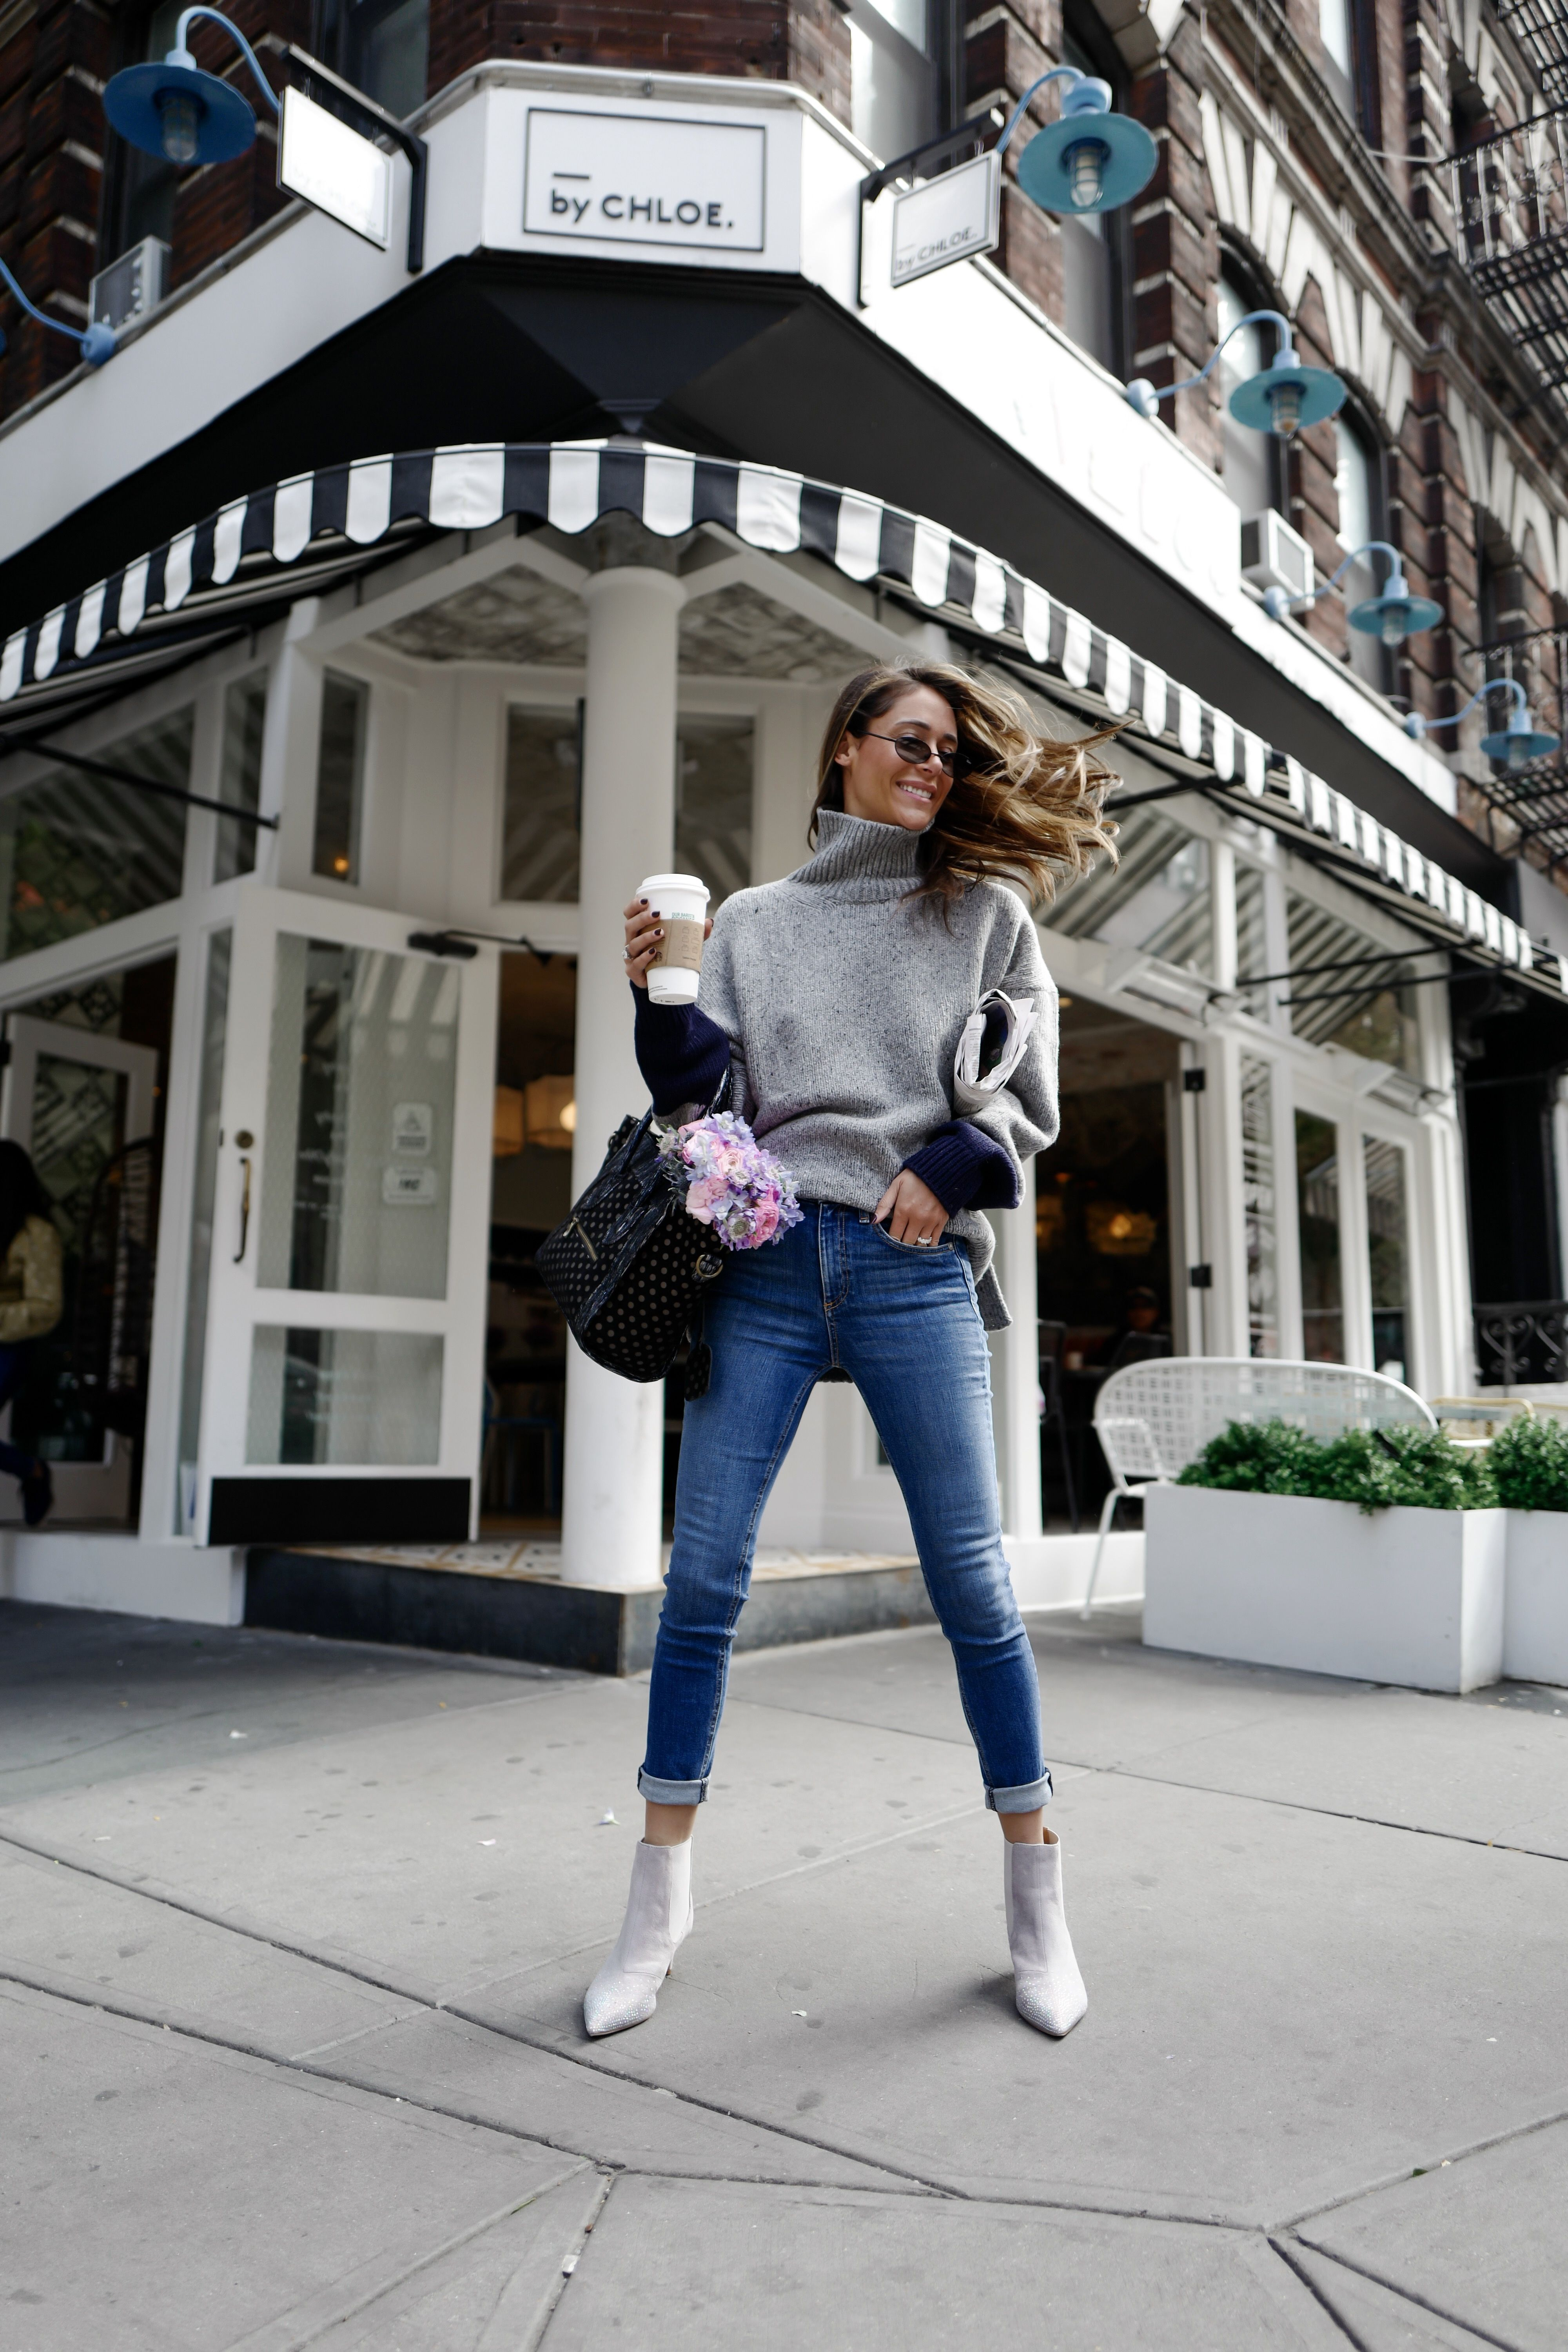 She S Madness In A Pretty Package And By Pretty Package I Mean My Dsw Crystal Kitten Heel Spring Outfits Casual Mens Fashion Edgy Trendy Work Outfit